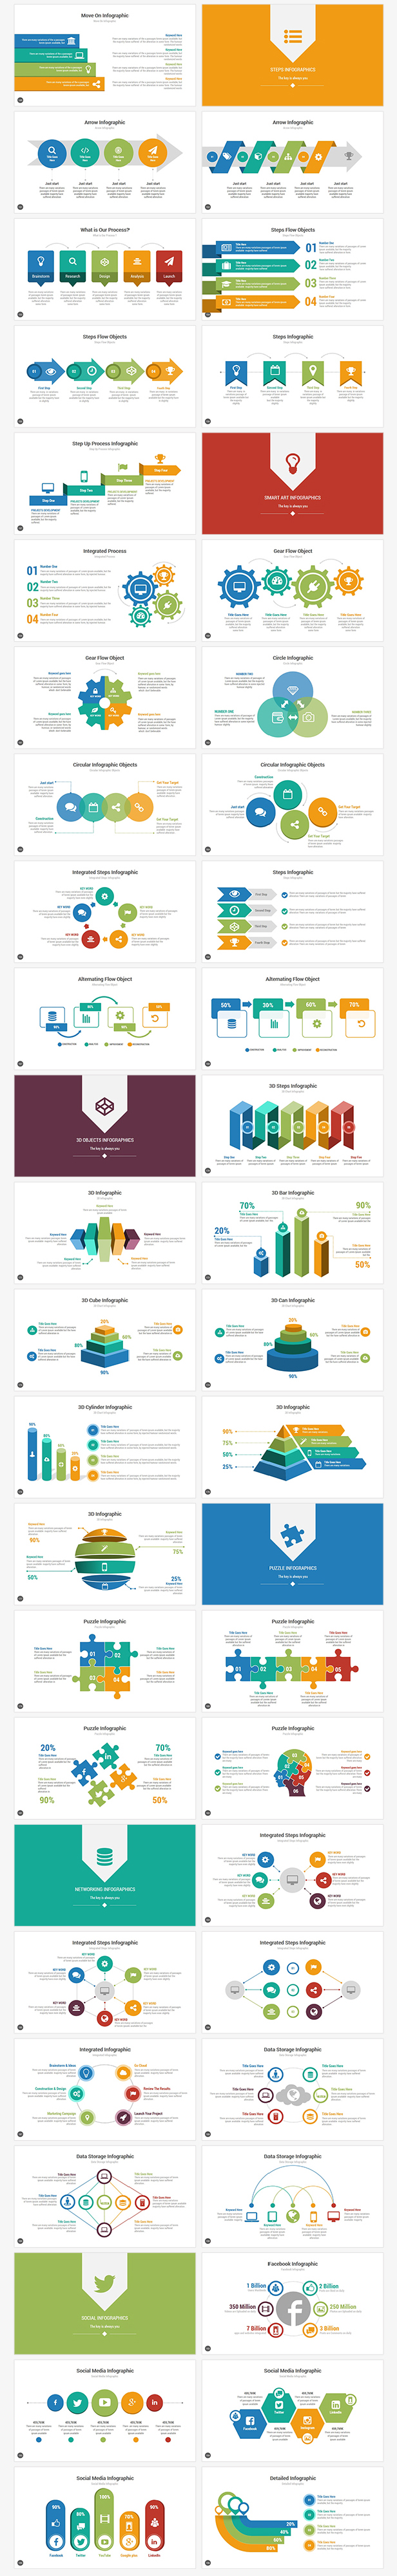 Gravity PowerPoint Presentation Template - 3